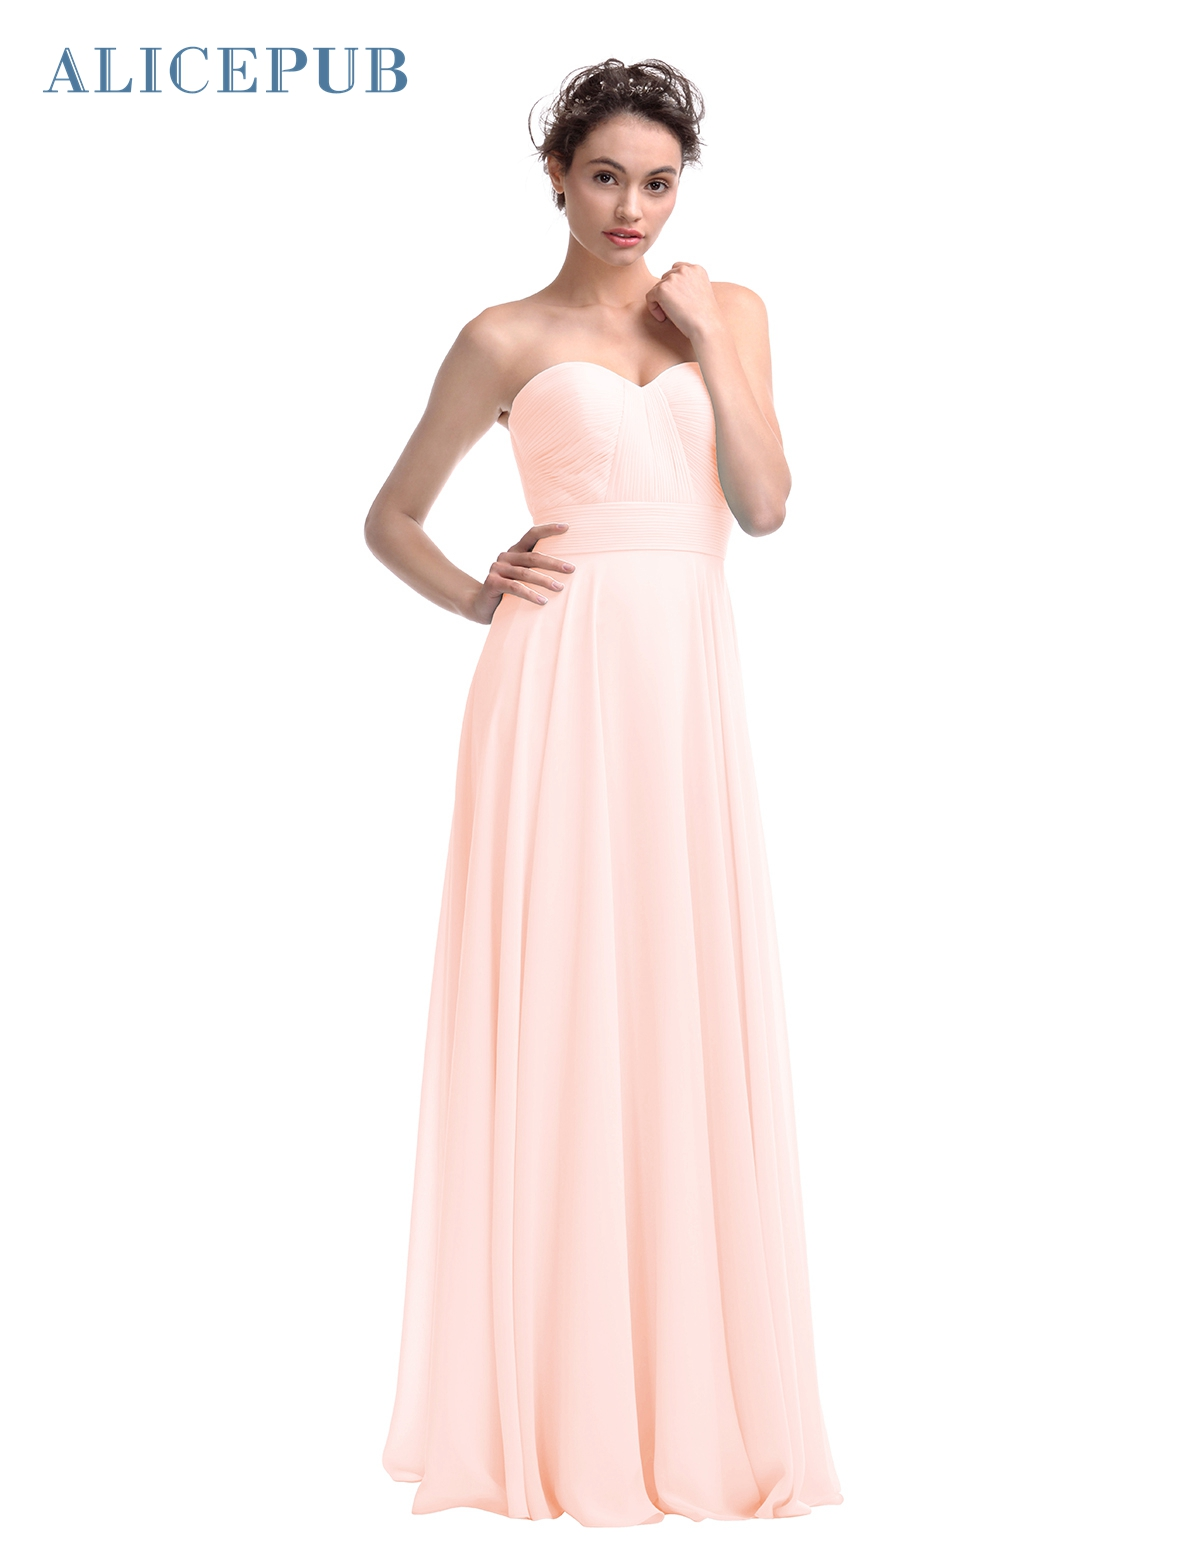 Alicepub sweetheart bridesmaid dresses long chiffon maxi wedding alicepub sweetheart bridesmaid dresses long chiffon maxi wedding party dress romantic homecomong dressing gown free shipping in bridesmaid dresses from ombrellifo Image collections